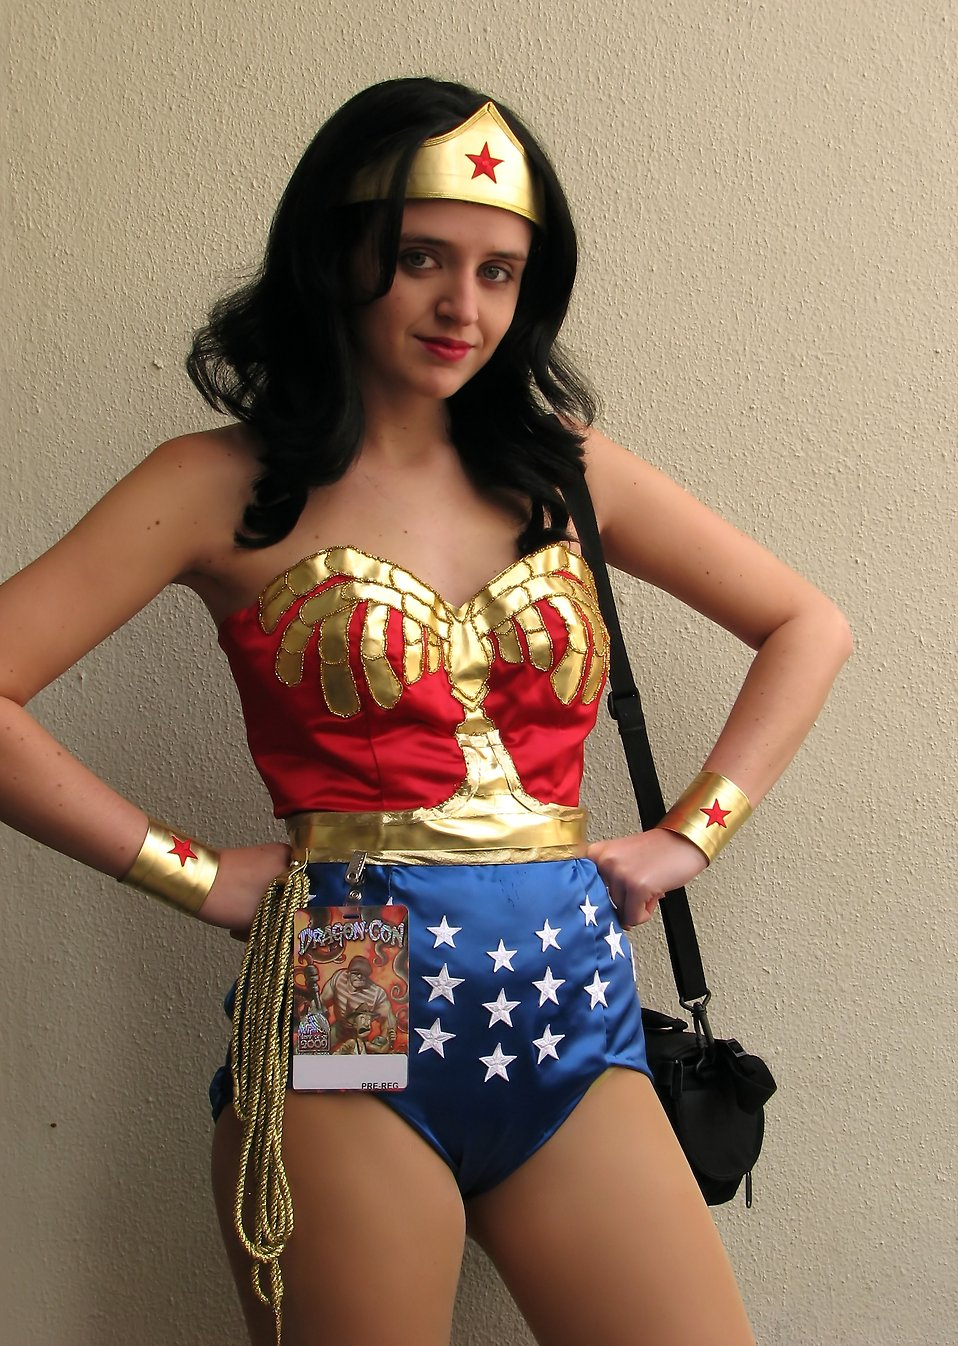 A beautiful girl in a Wonder Woman costume at Dragoncon 2009 in Atlanta, Georgia : Free Stock Photo